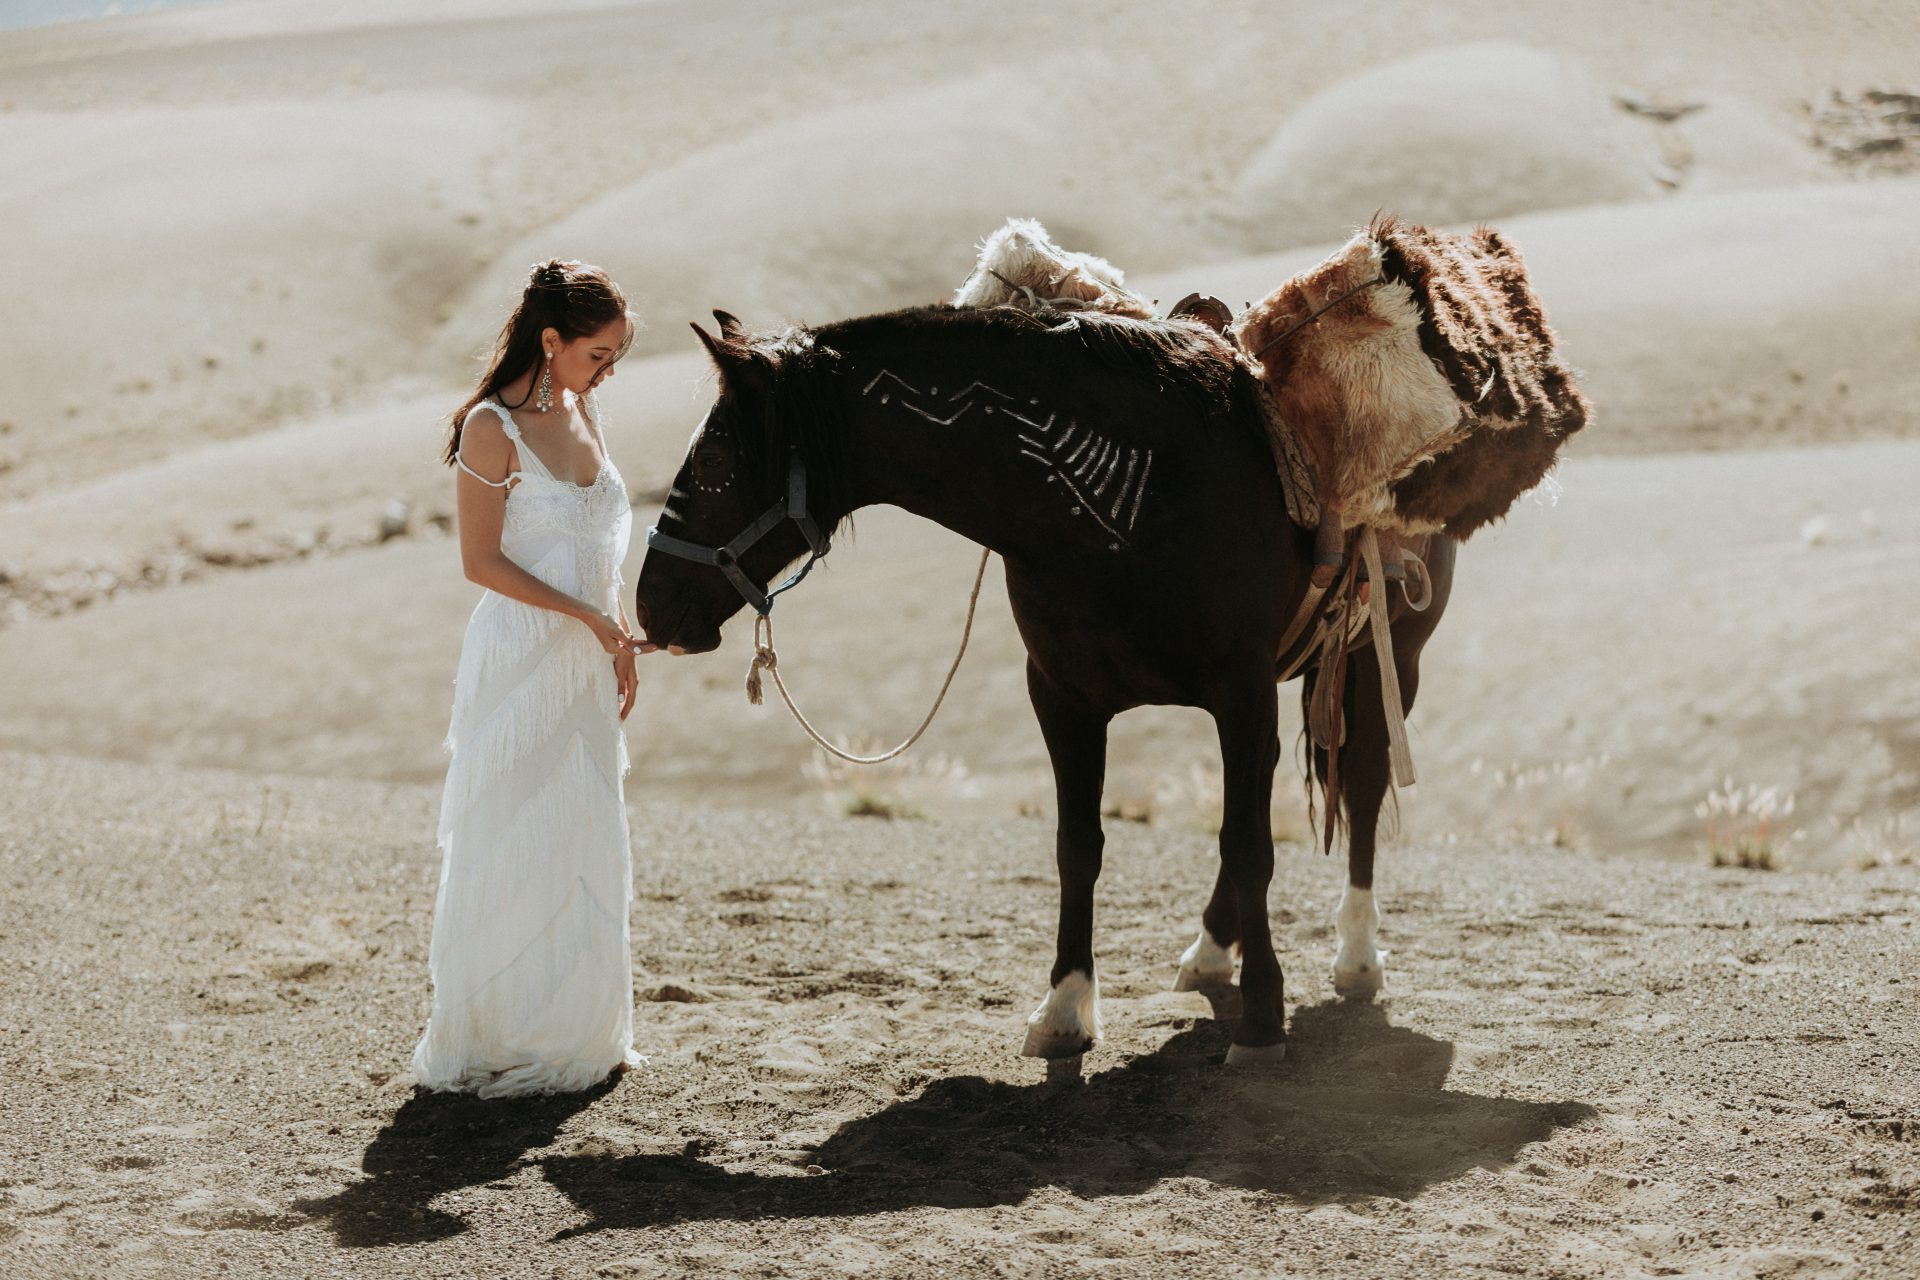 ADventure wedding in Chile with horses - go on a multi day horse-riding trip for your wedding and honeymoon in Chile